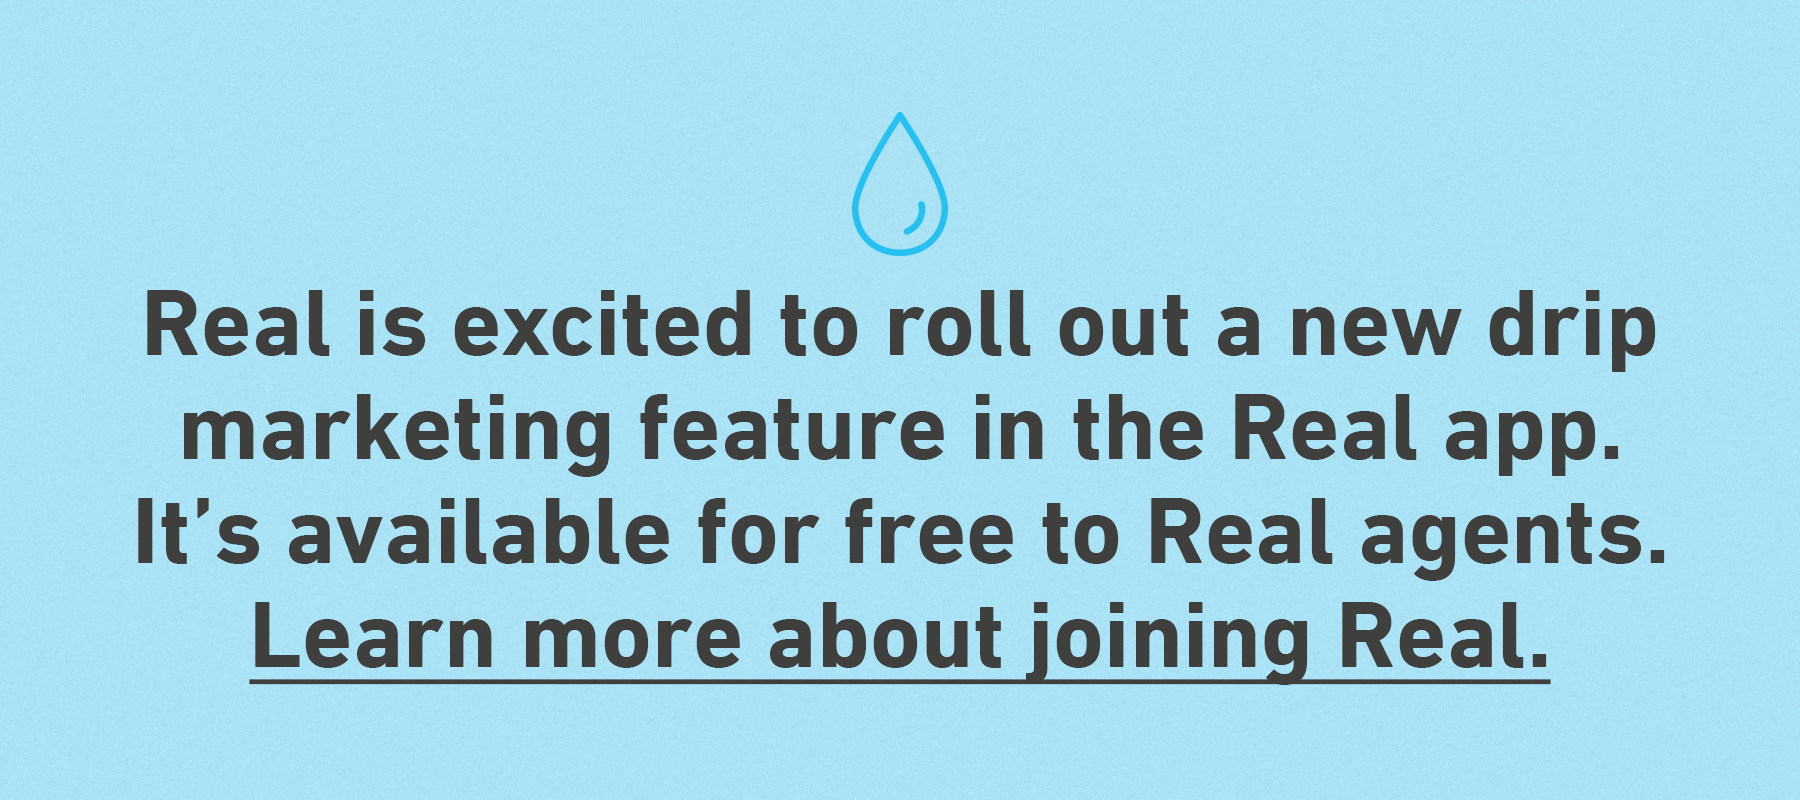 Learn more about joining Real.